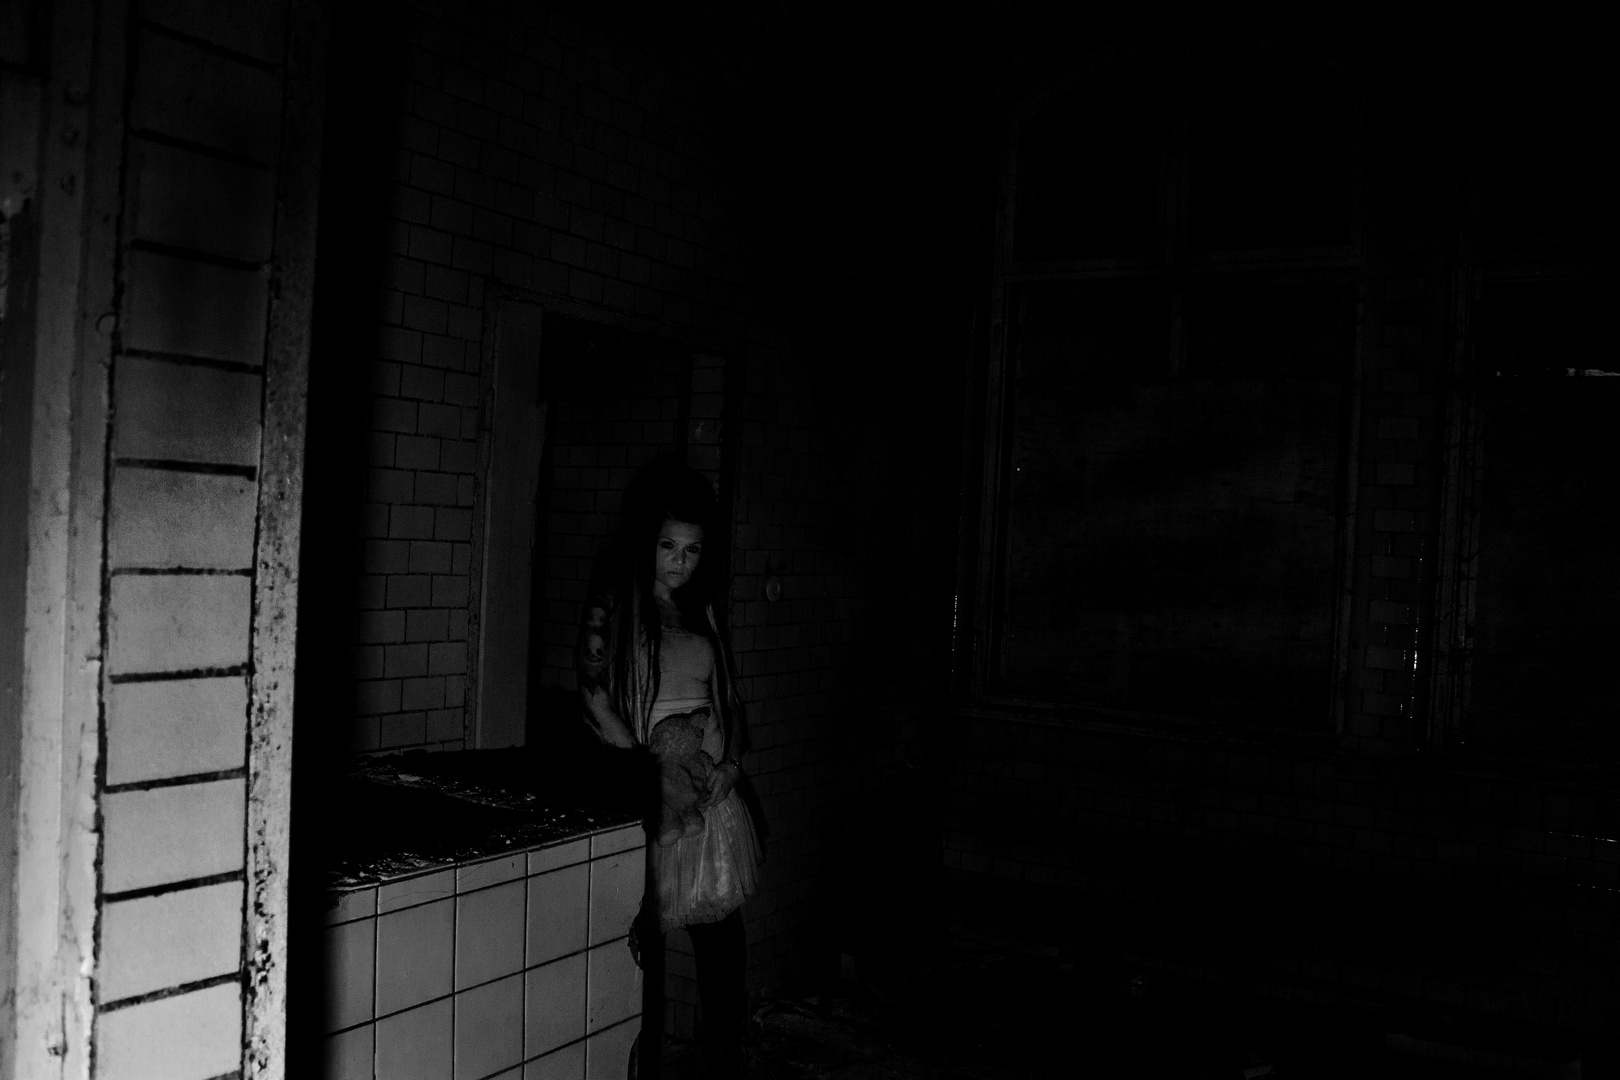 in the darkness i can see you